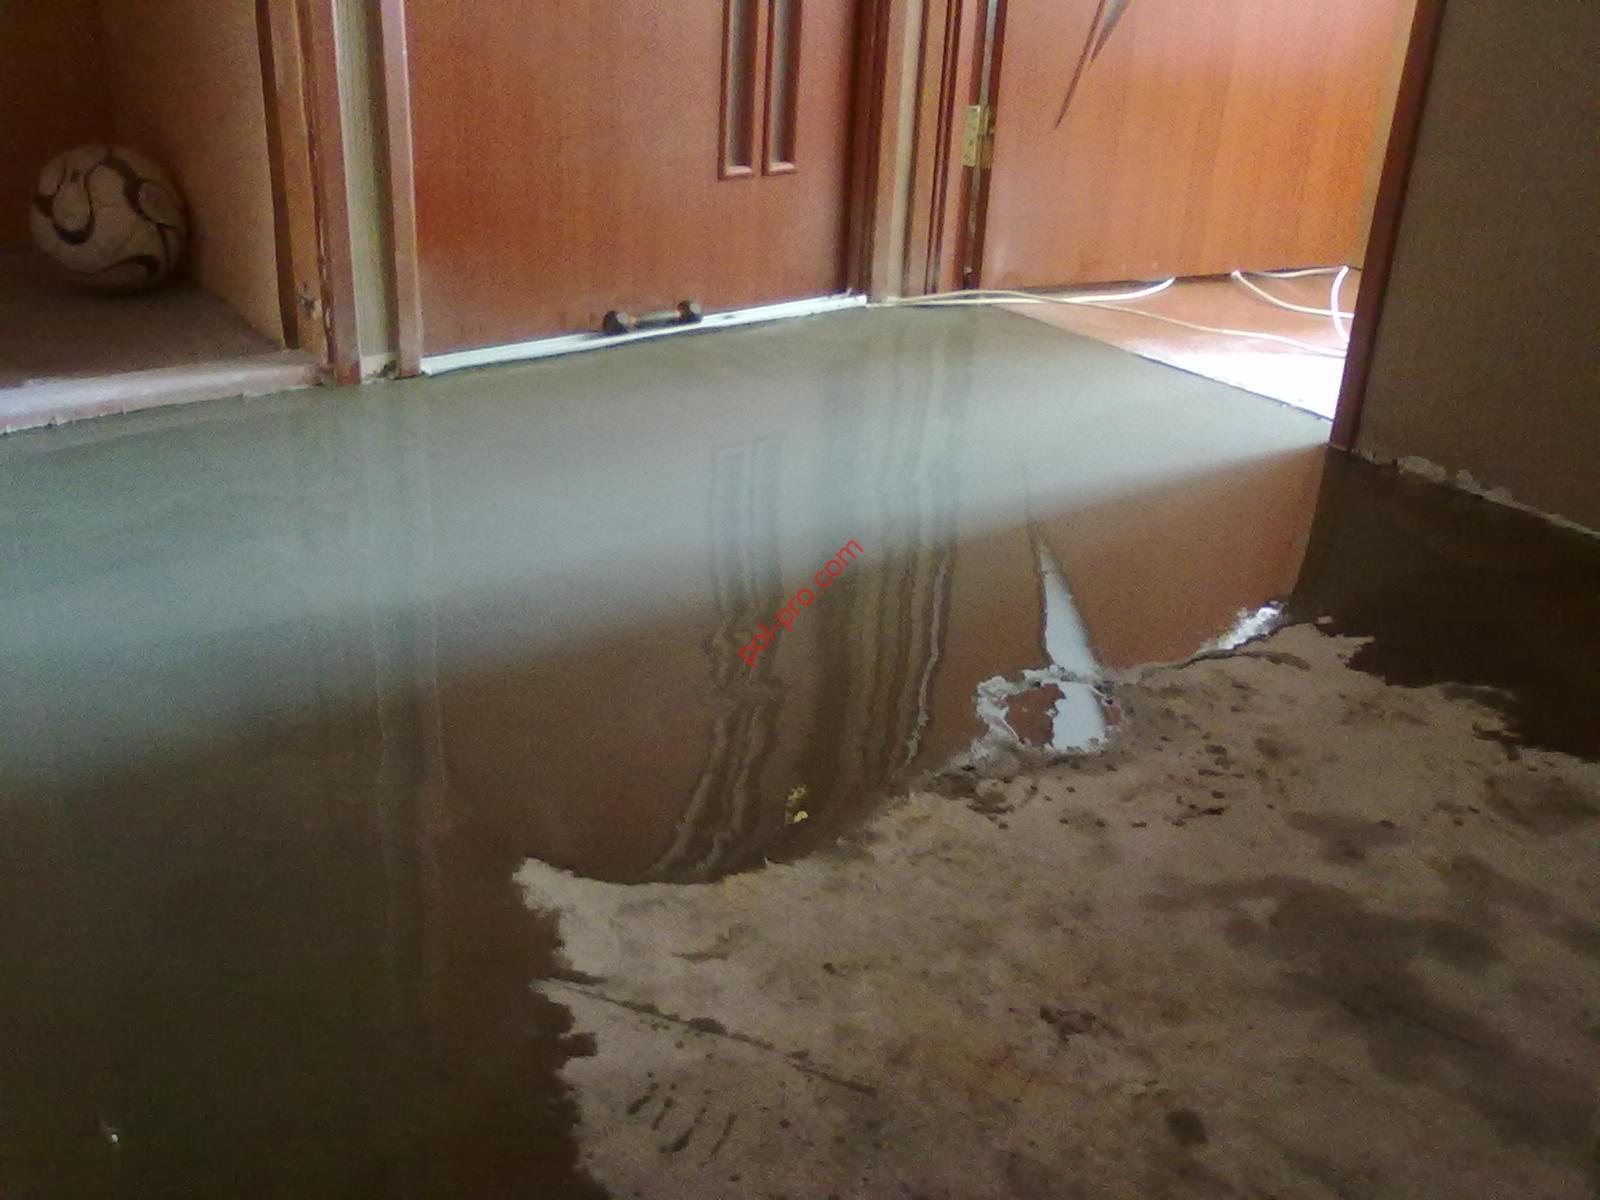 Leveling the floor with a self-leveling compound: screed and drying time for bulk, better gypsum and cement - home decor.